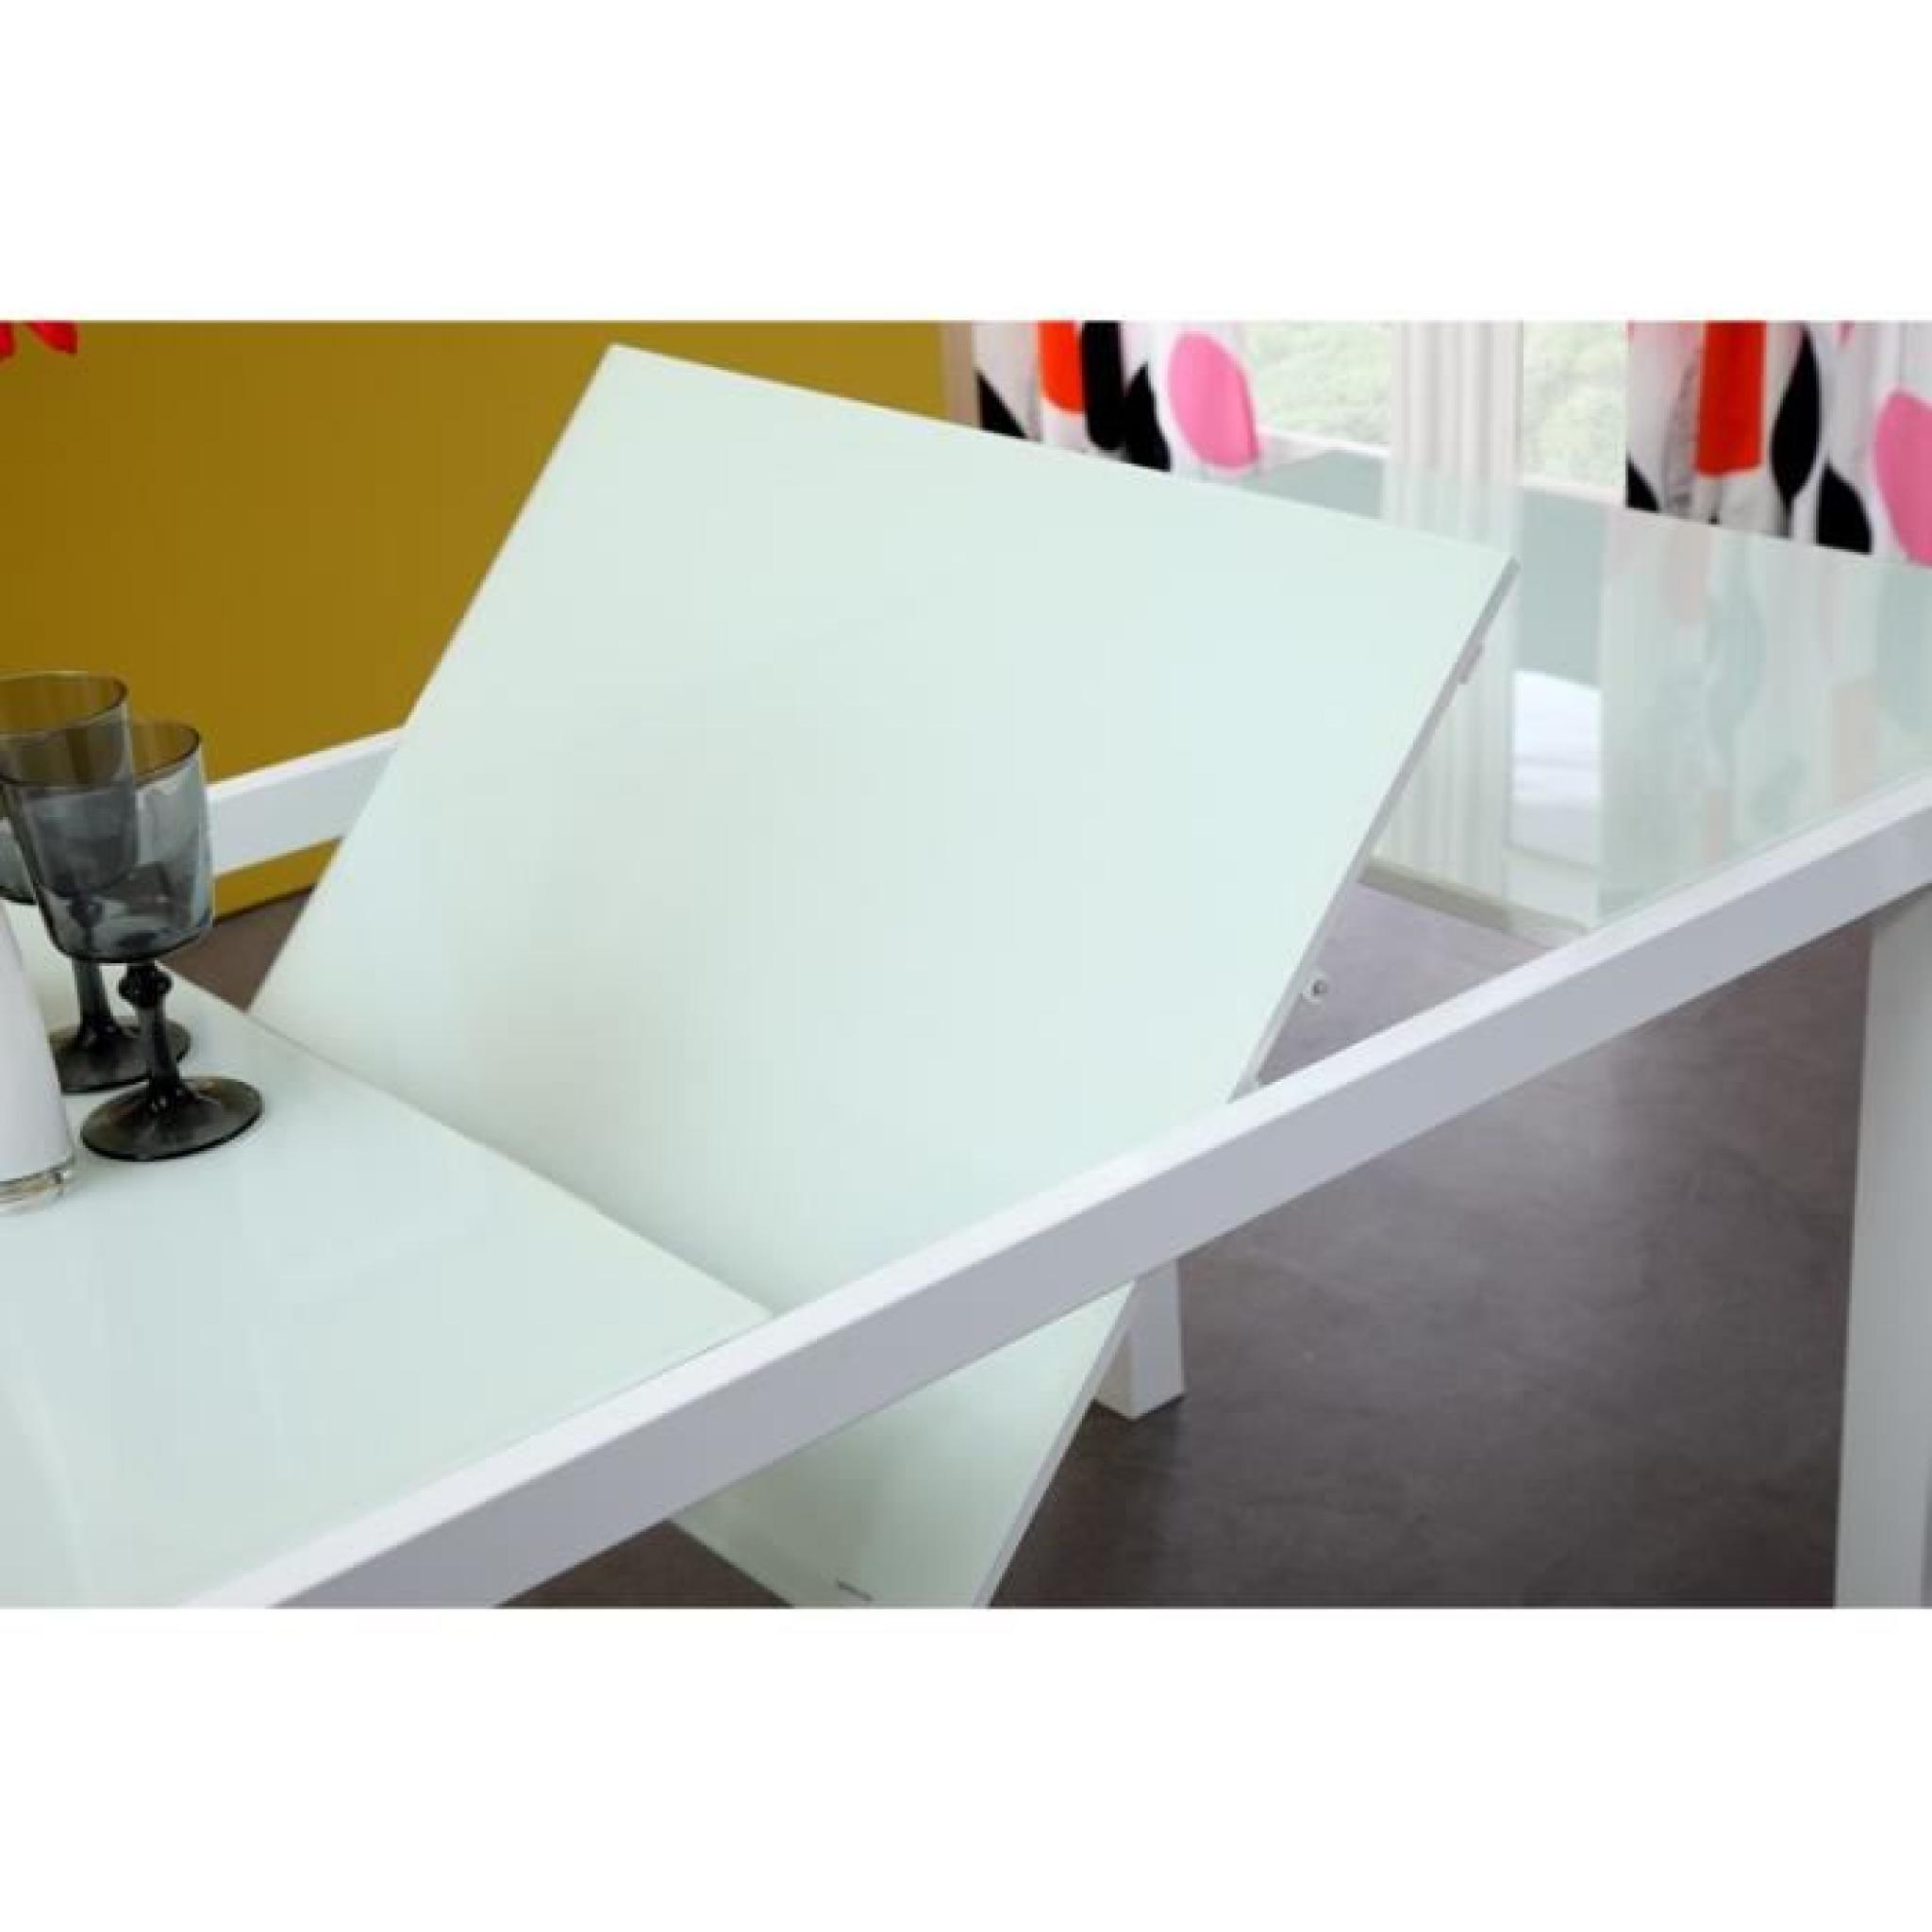 Table Sejour Verre Roma Table Extensible 120 180cm Verre Blanc